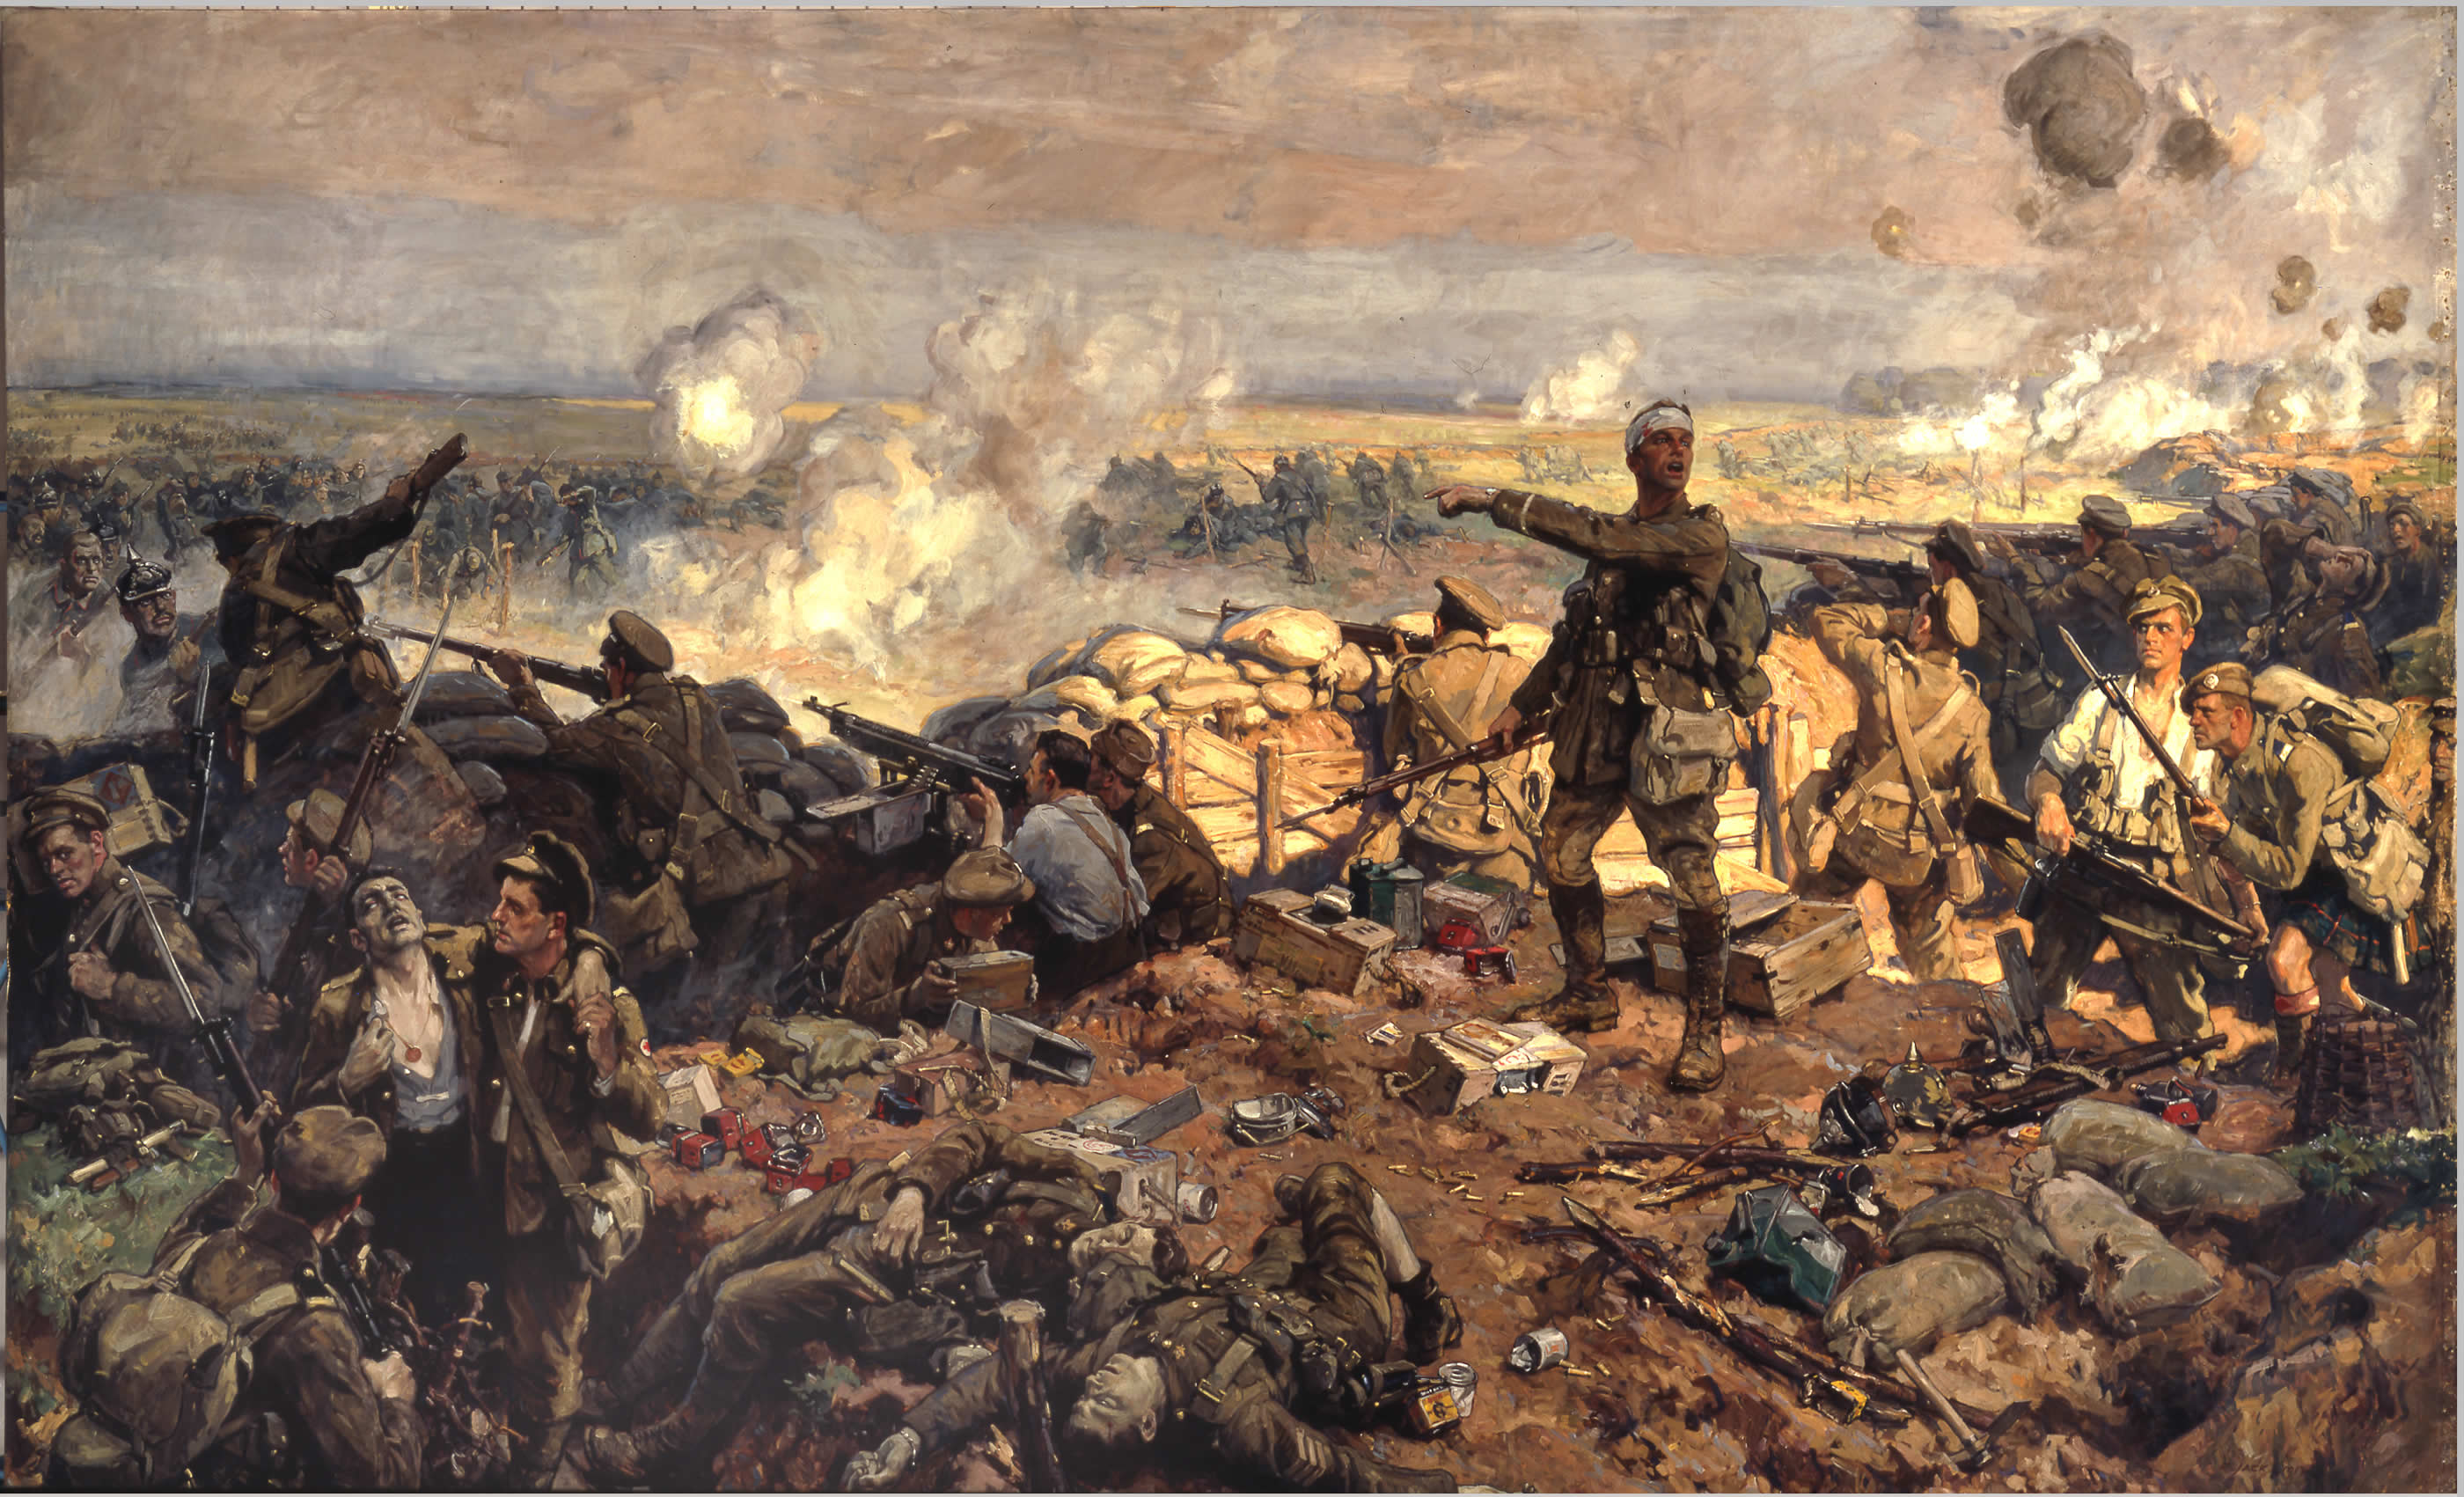 The Second Battle of Ypres 1915 (image provided by wikipedia)